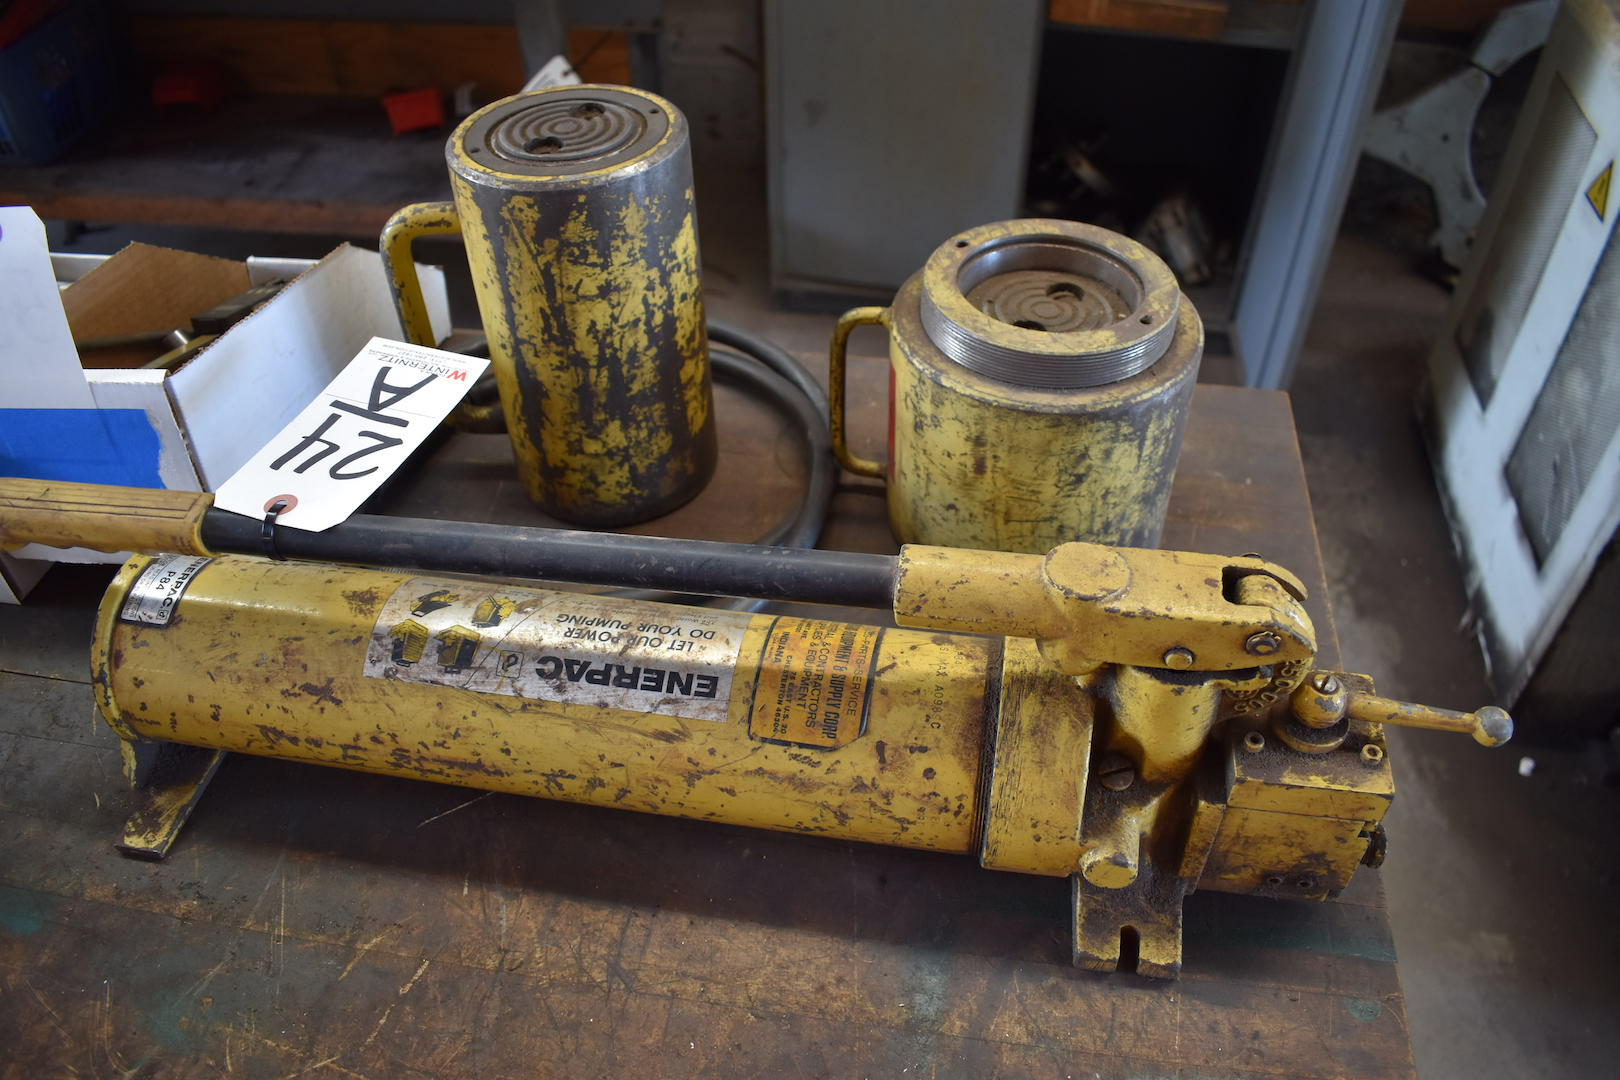 Lot 24A - Enerpac Model P-84 Hydraulic Power Pack with (2) Cylinders